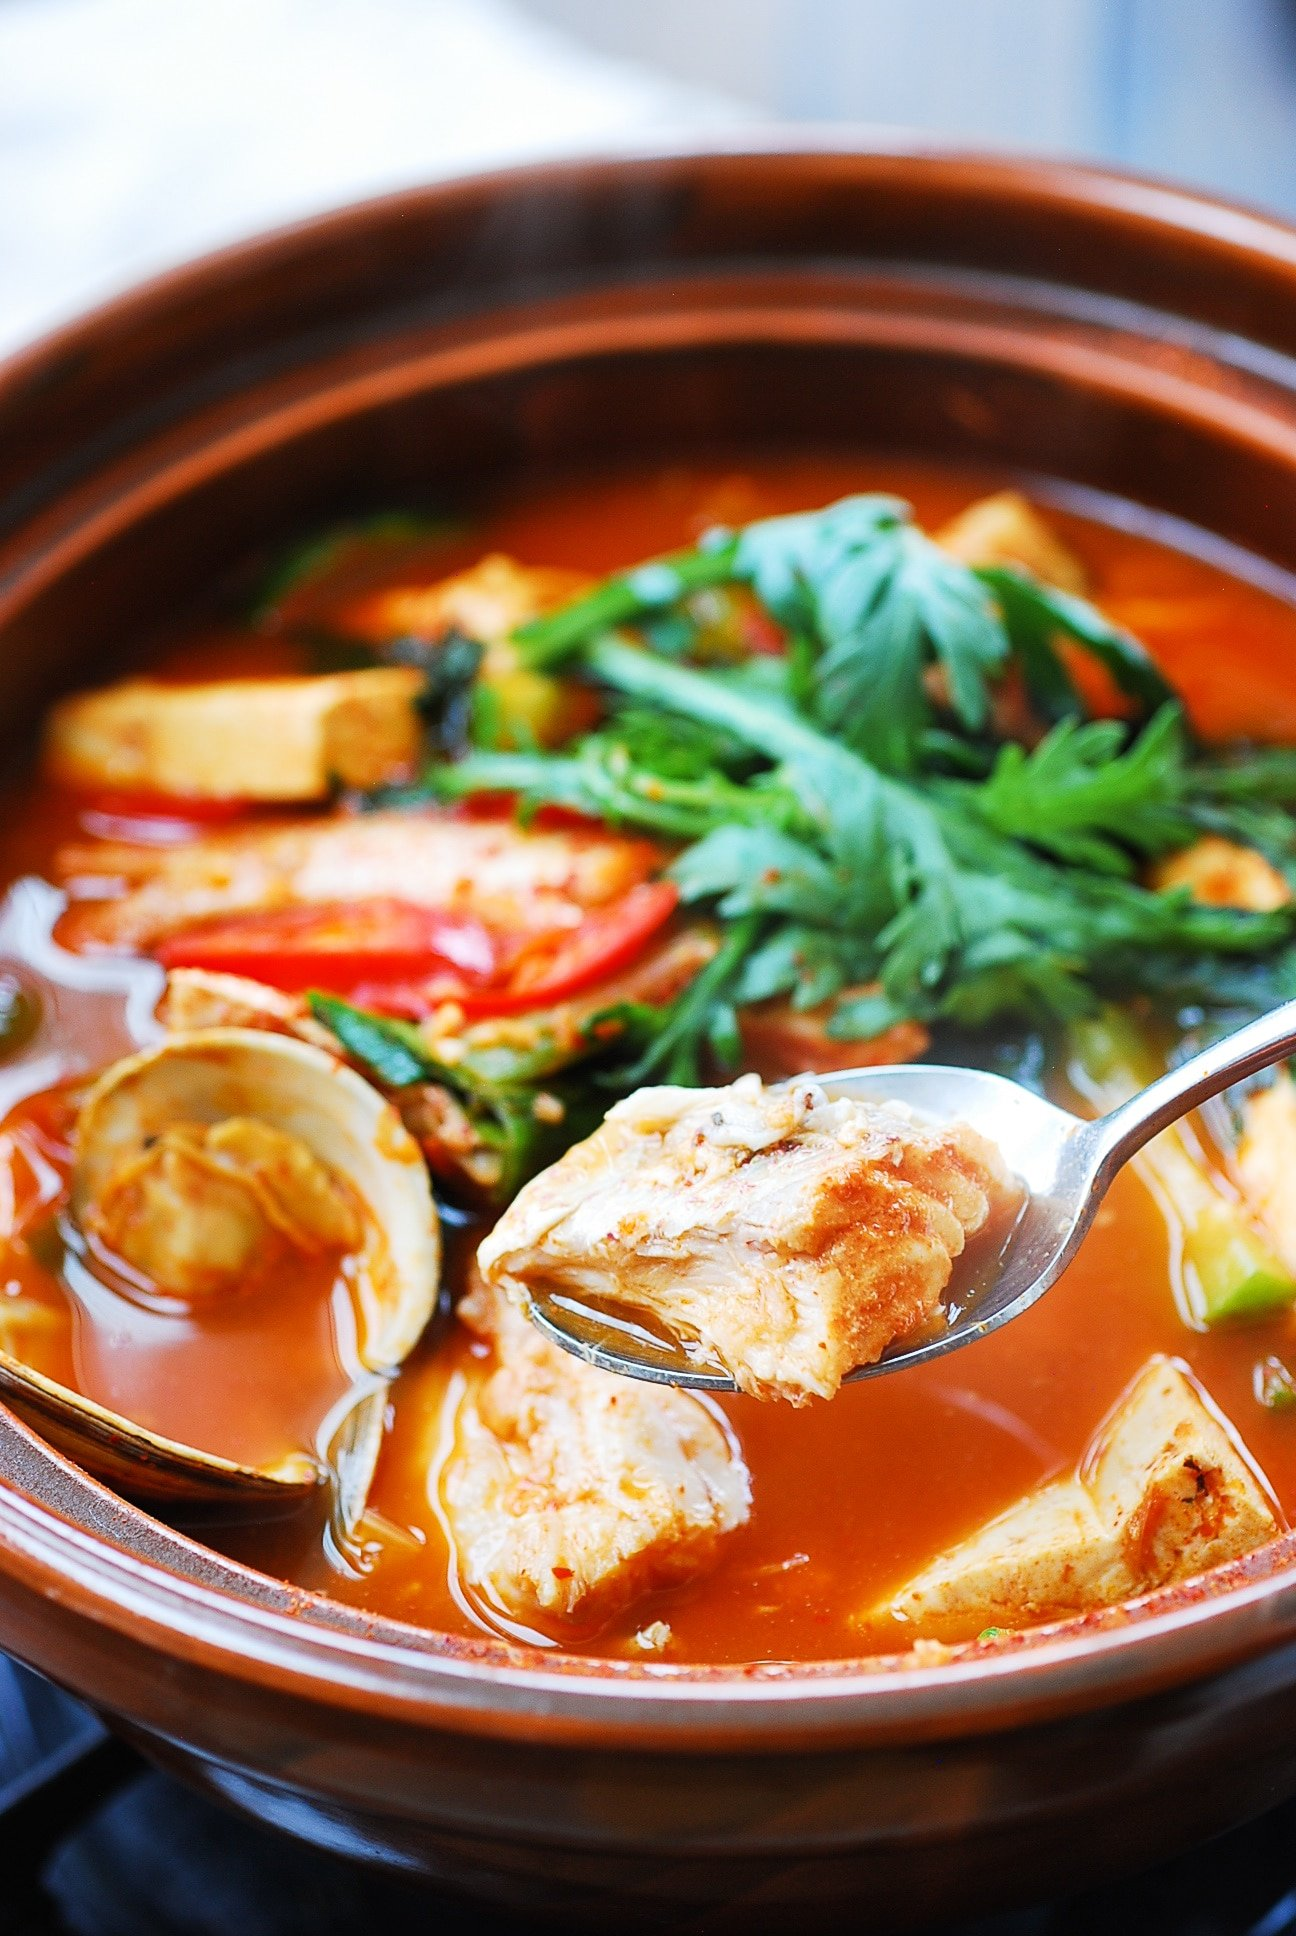 DSC 2725 2 - Domi Maeuntang (Spicy Fish Stew with Red Snapper)